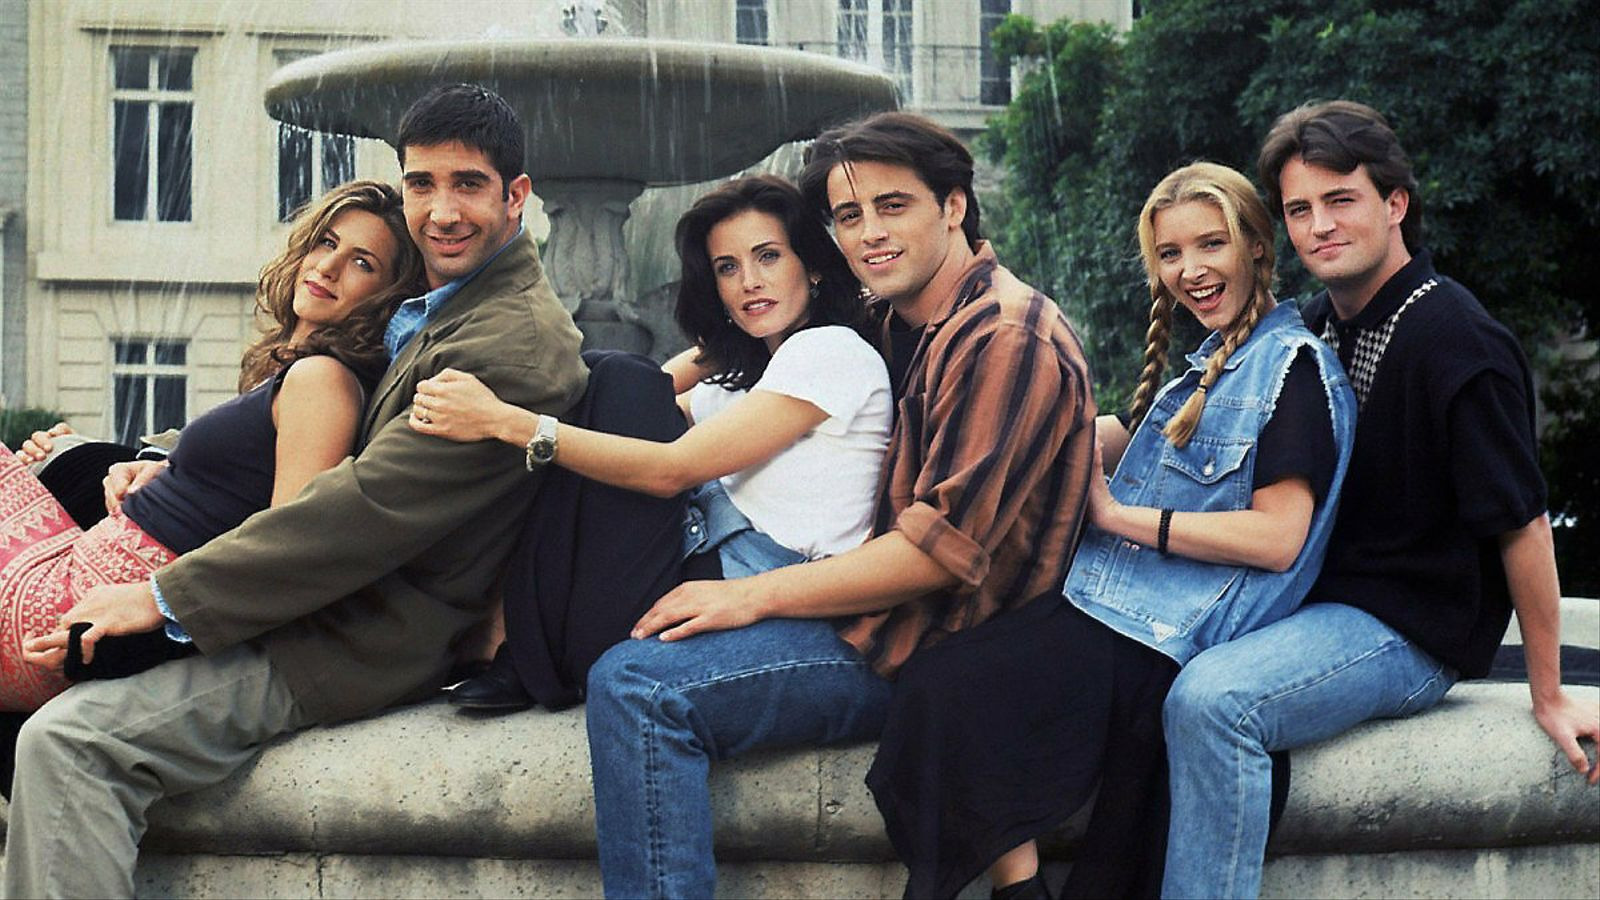 'Friends', massa  avorrida per triomfar